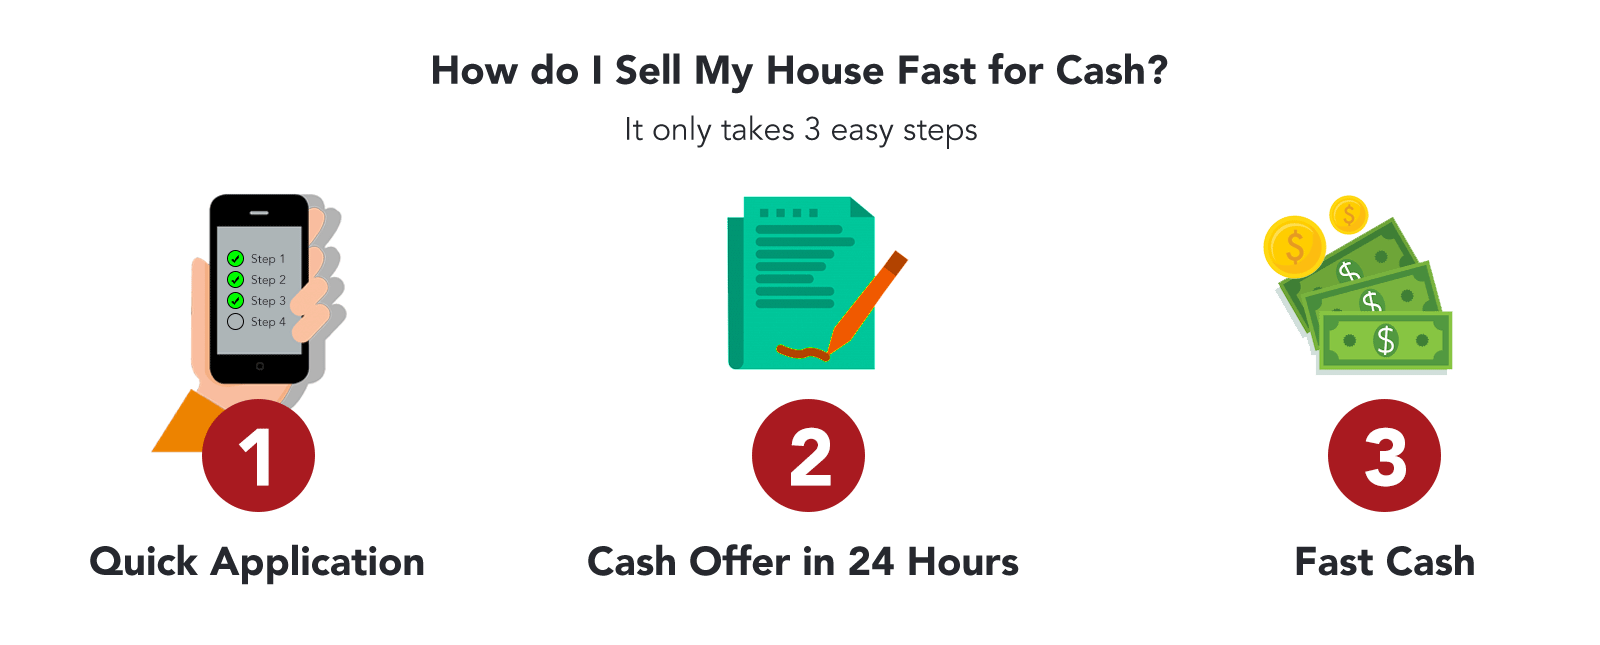 3 Steps to sell Your House Fast for cash